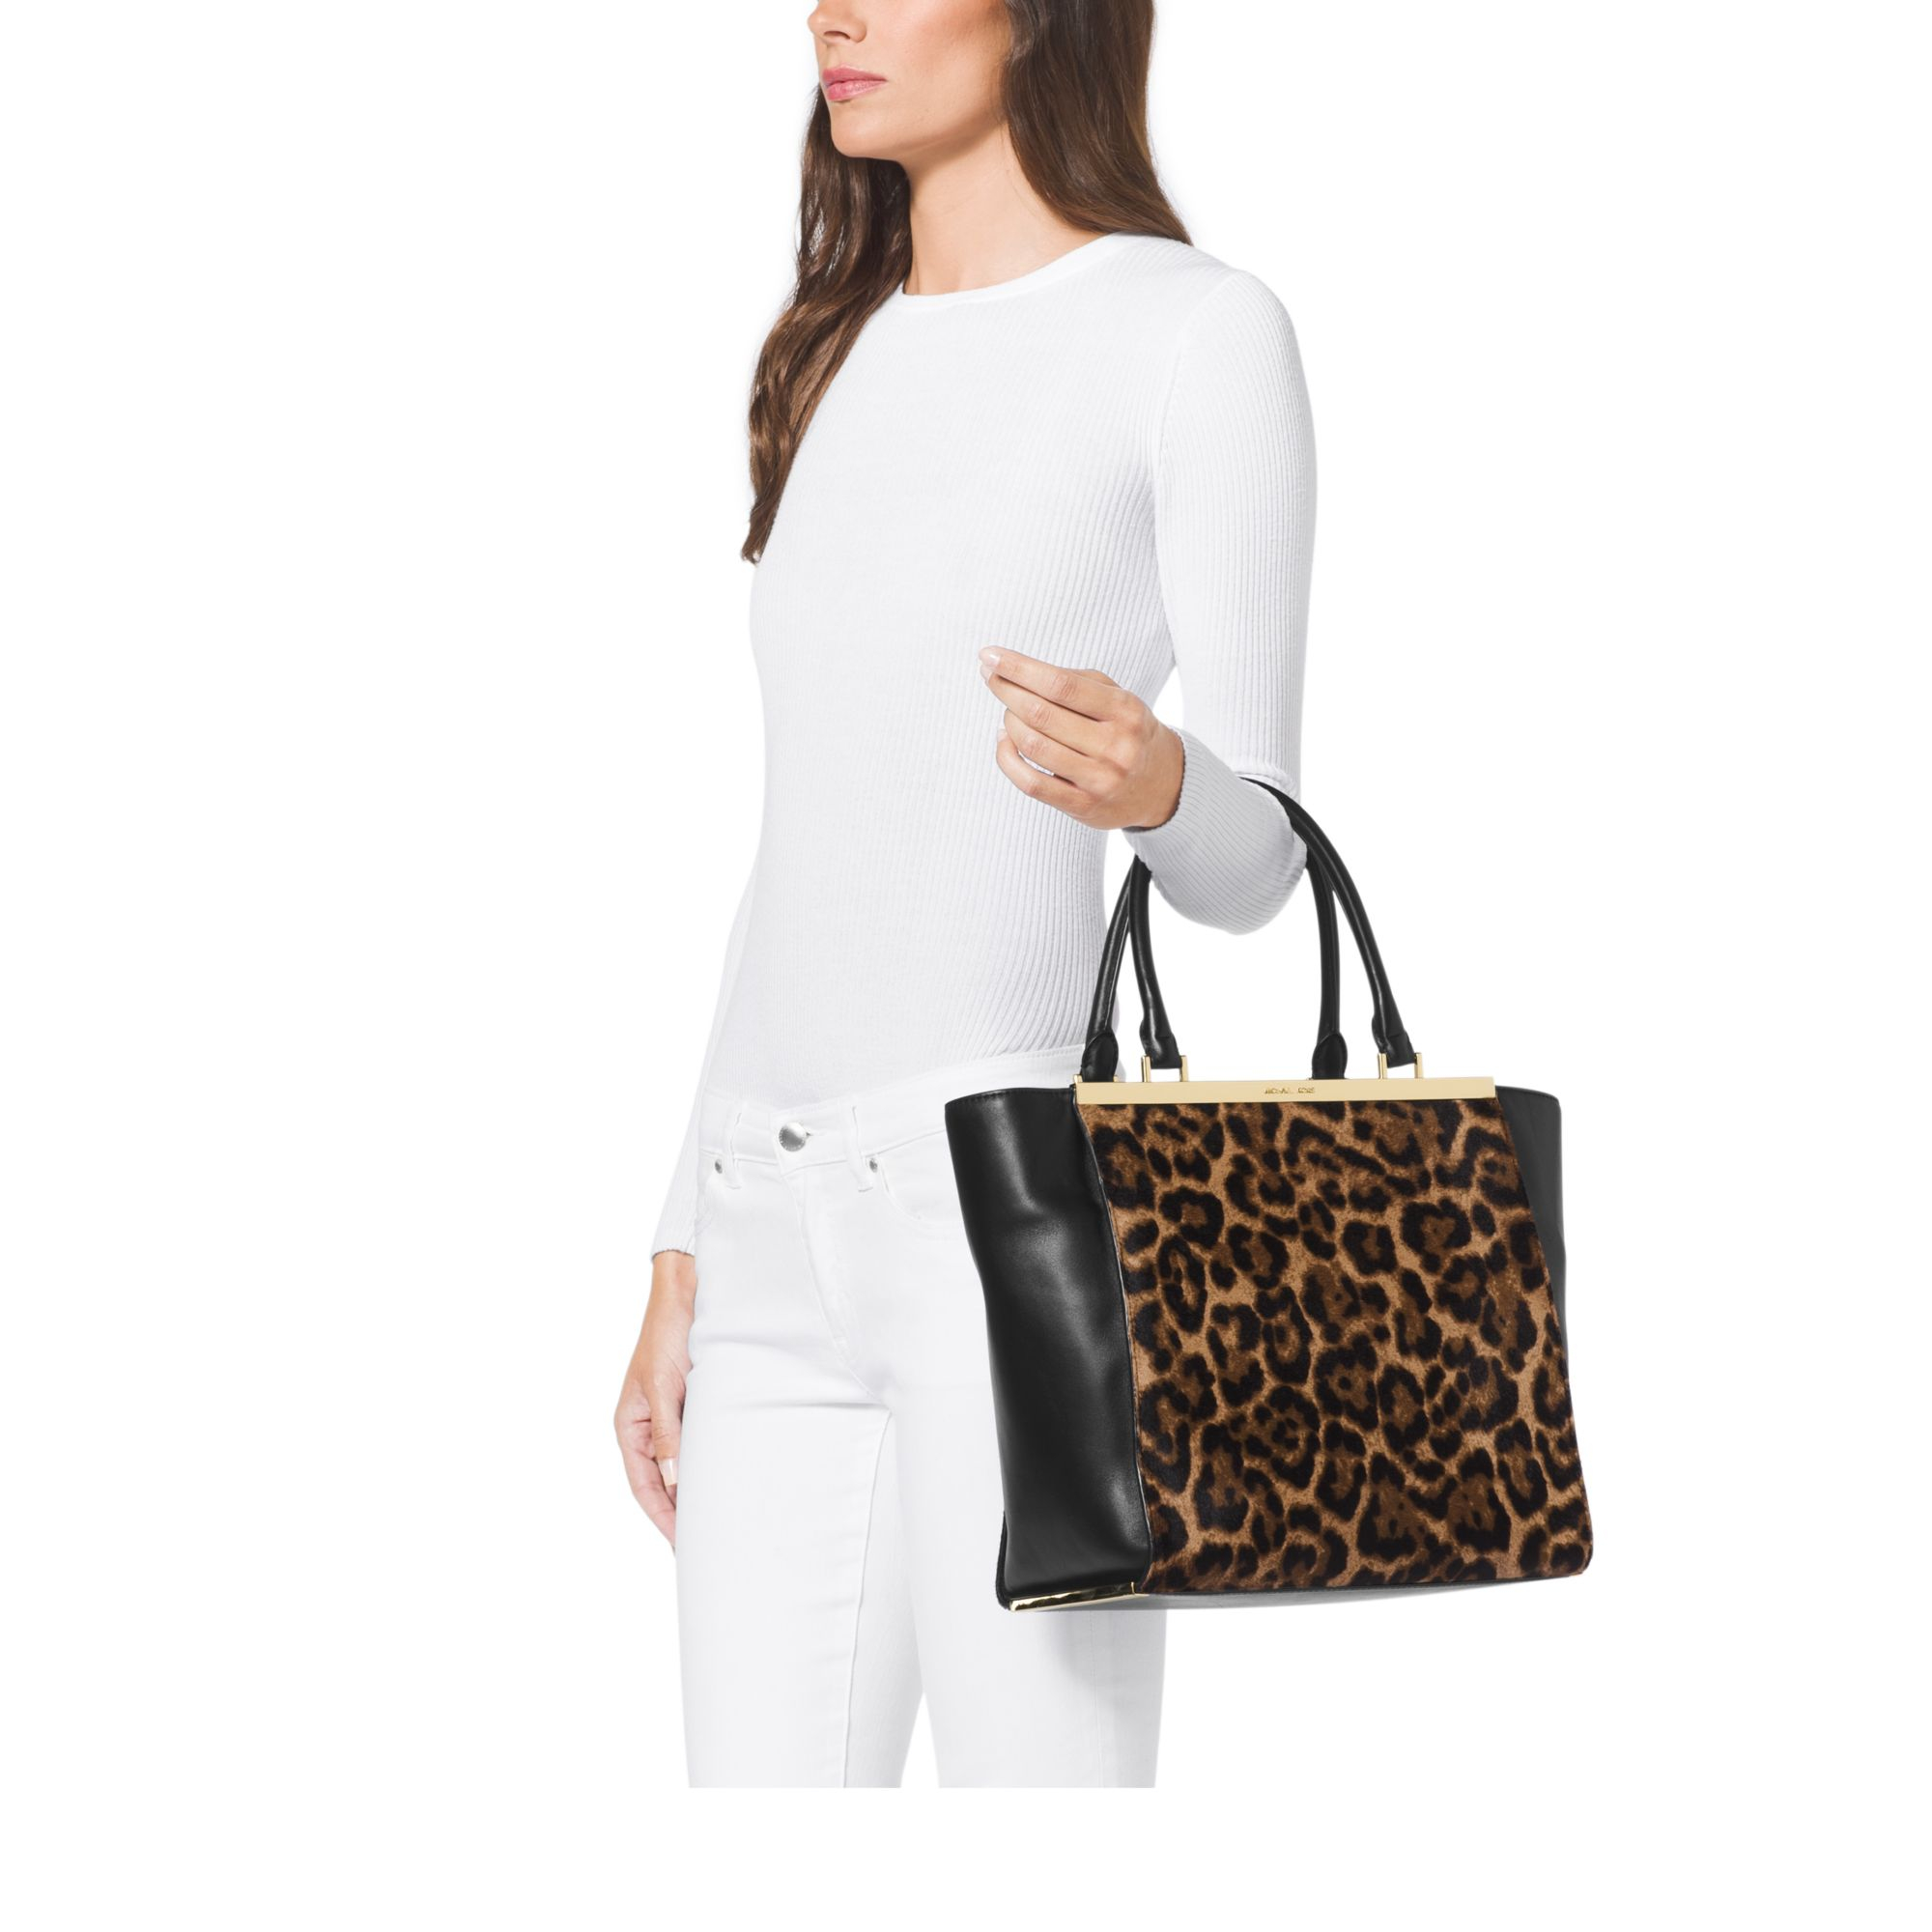 773ce5b24992 michael kors animal jacquard backpack pattern